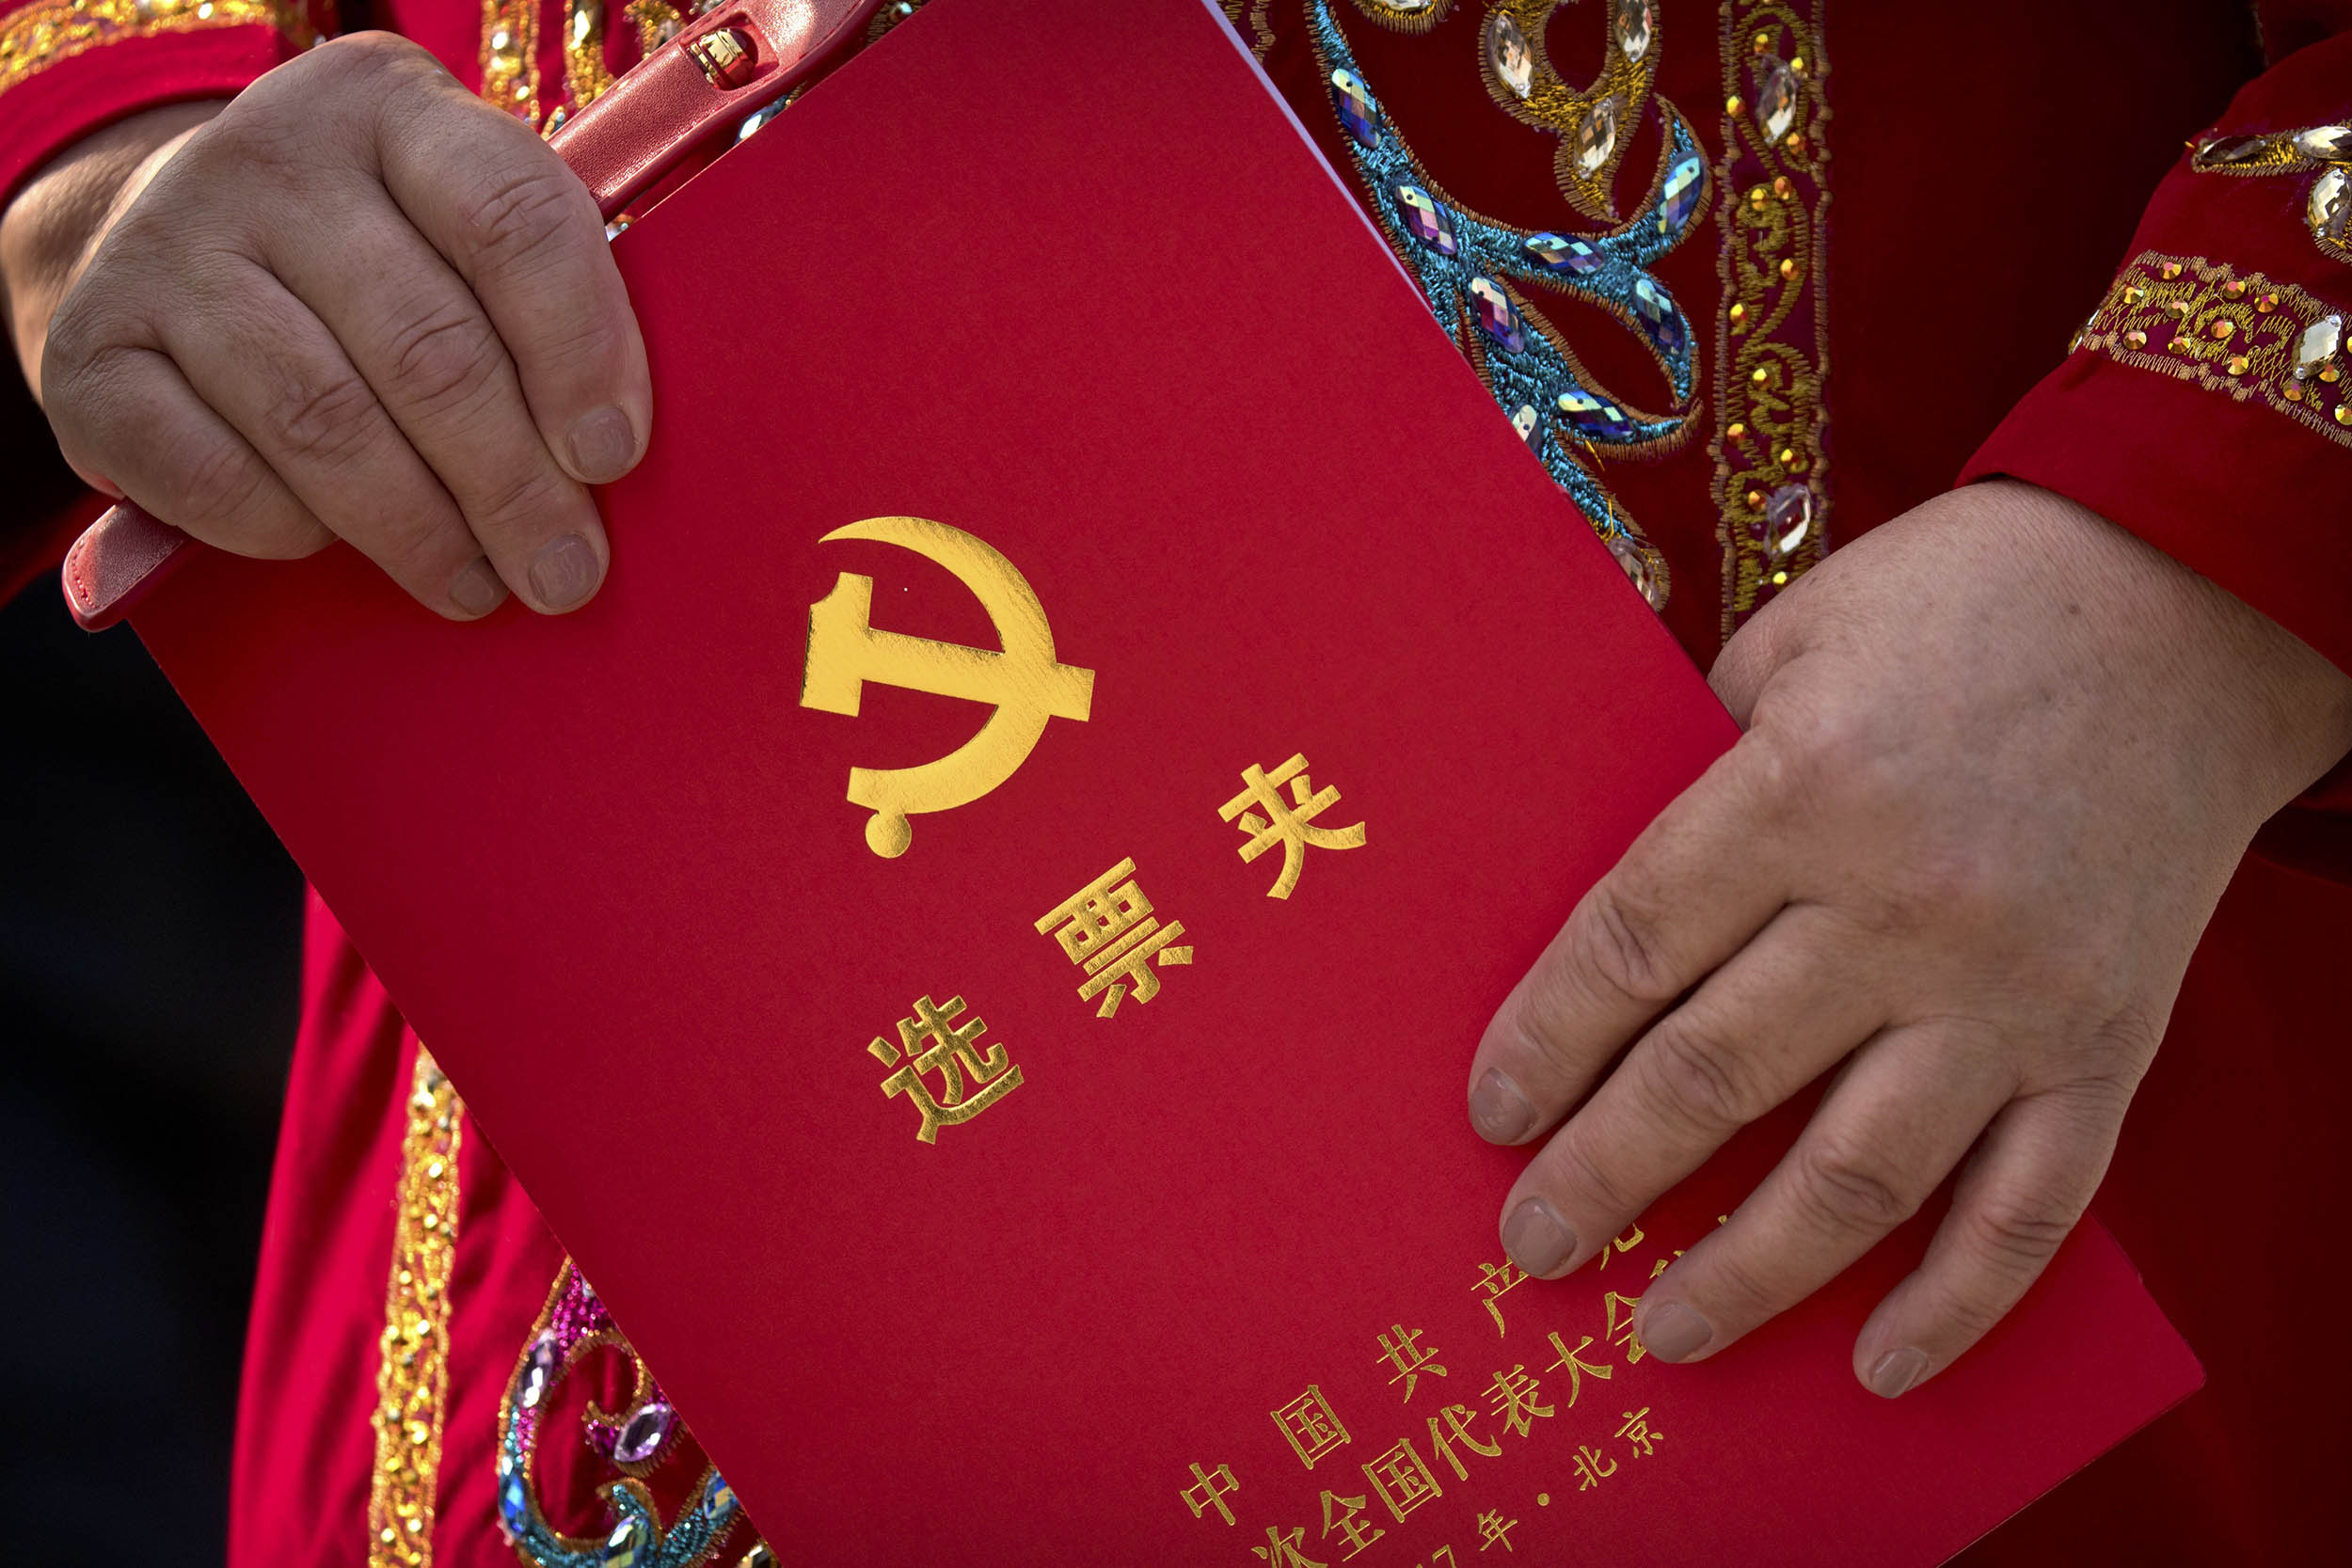 Image: 19th National Congress of the Communist Party of China